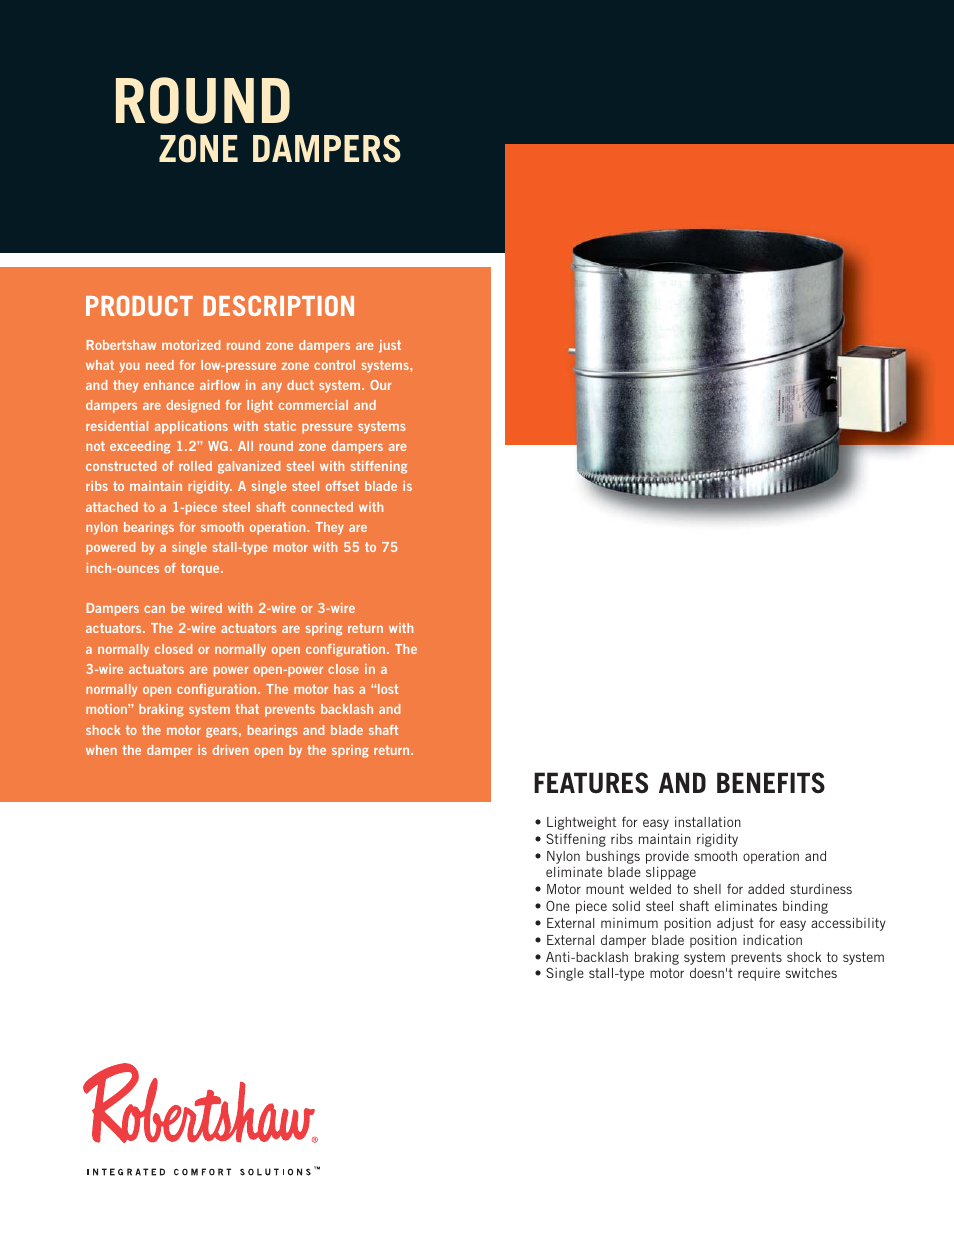 Robertshaw ROUND ZONE DAMPERS User Manual | 2 pages